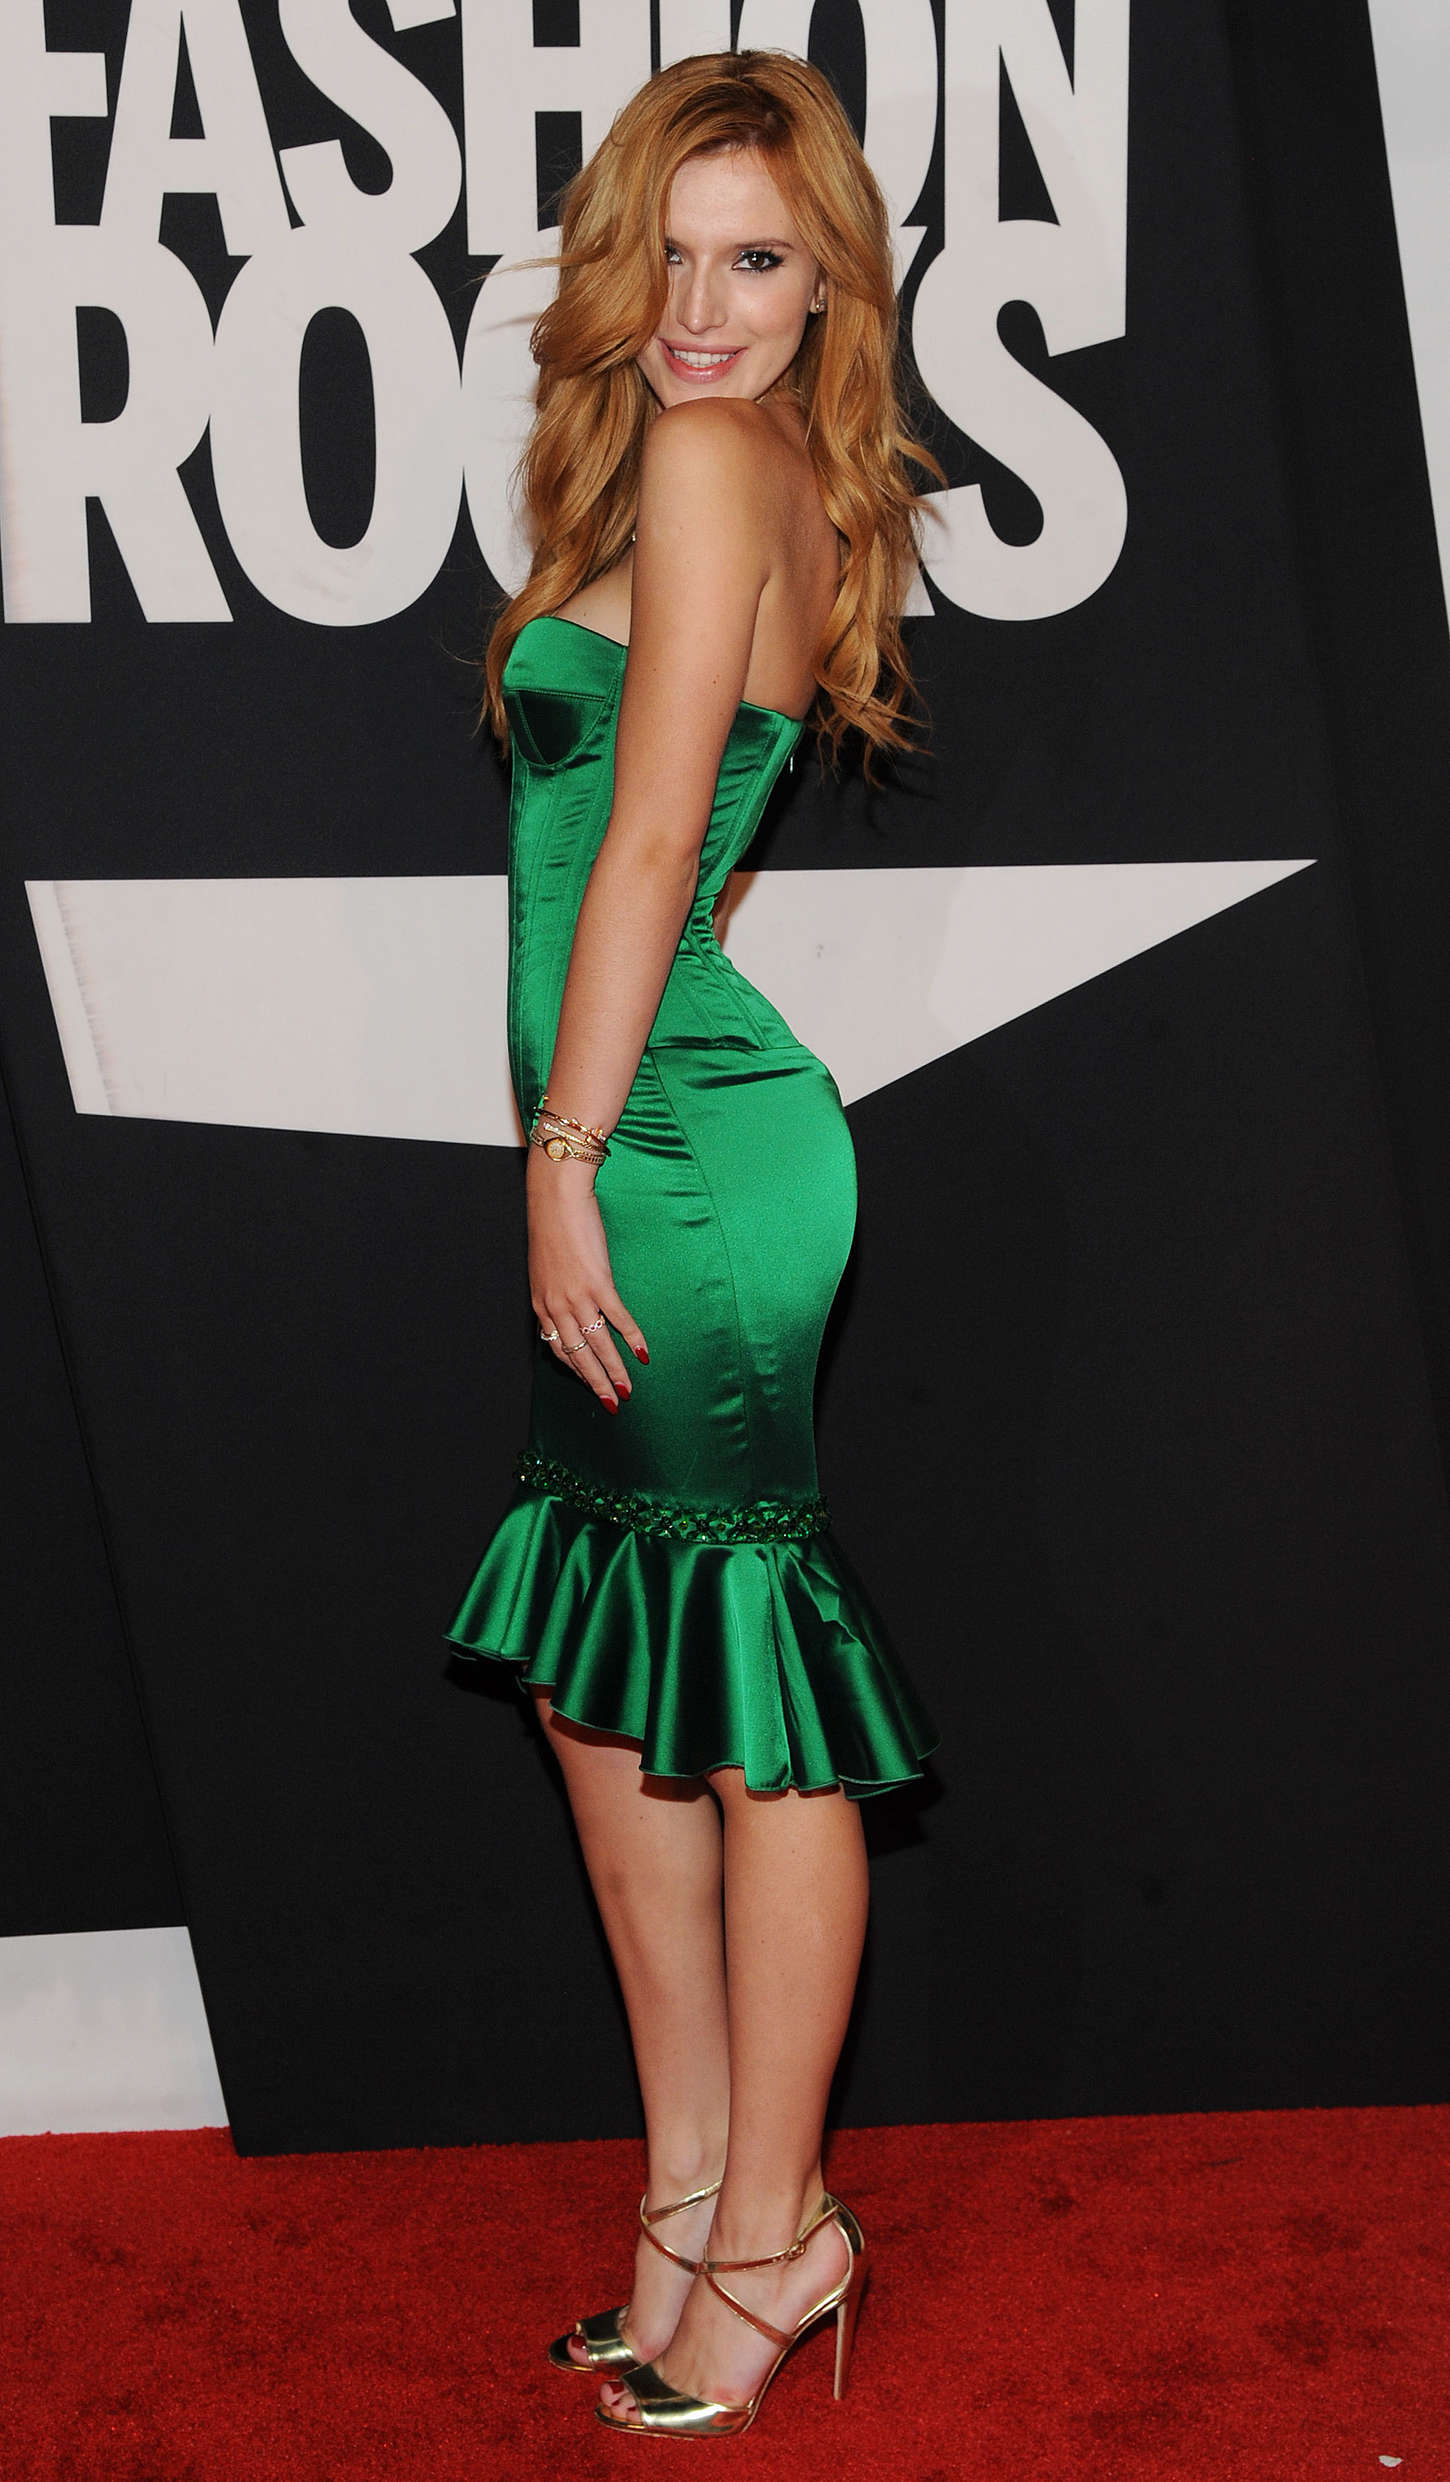 Bella Thorne Fashion Rocks 2014 At The Barclays Center